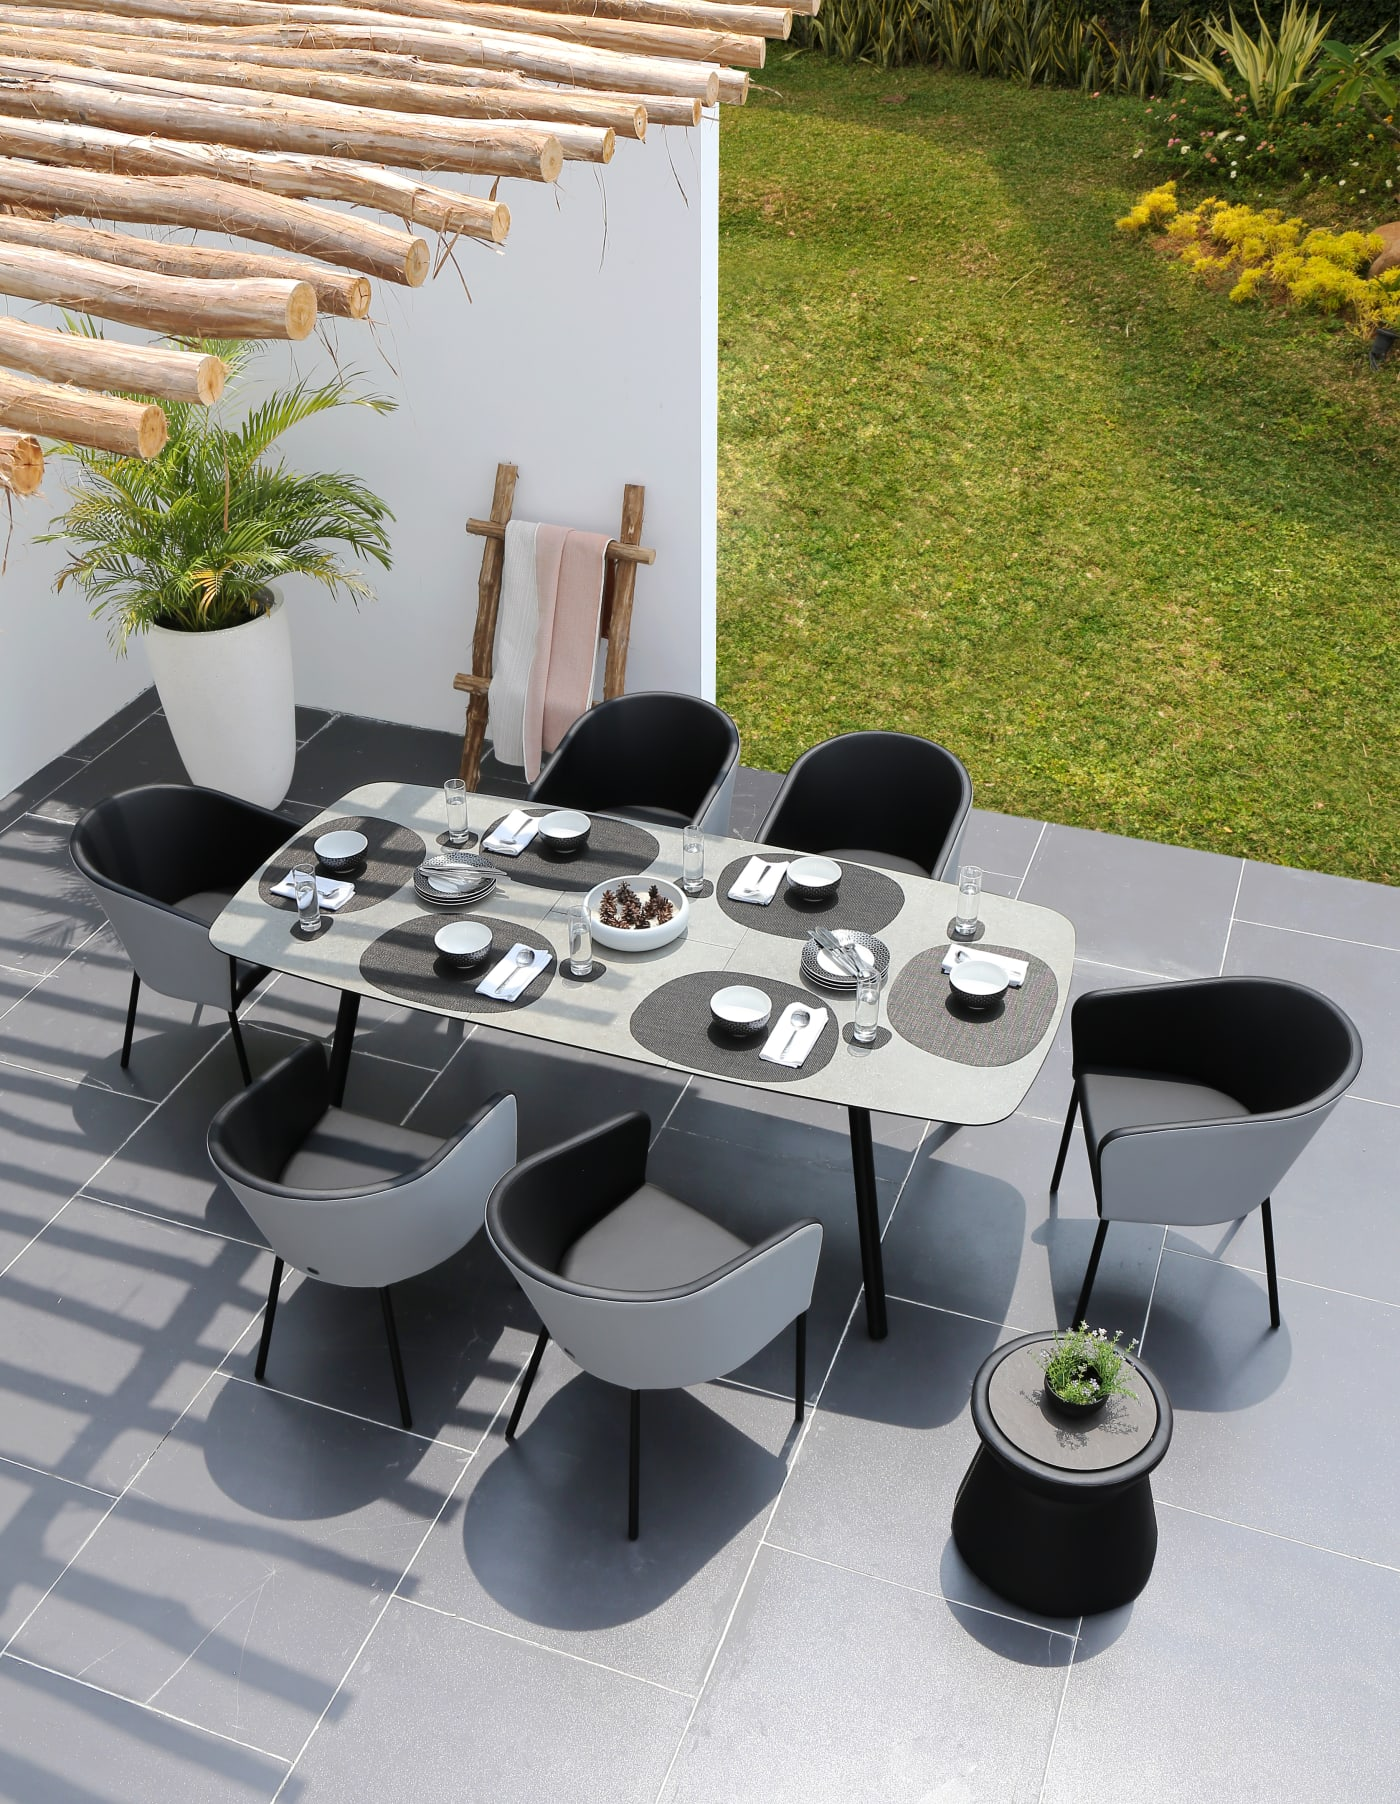 Zupy Extension Dining Table 244-295 cm - HPL